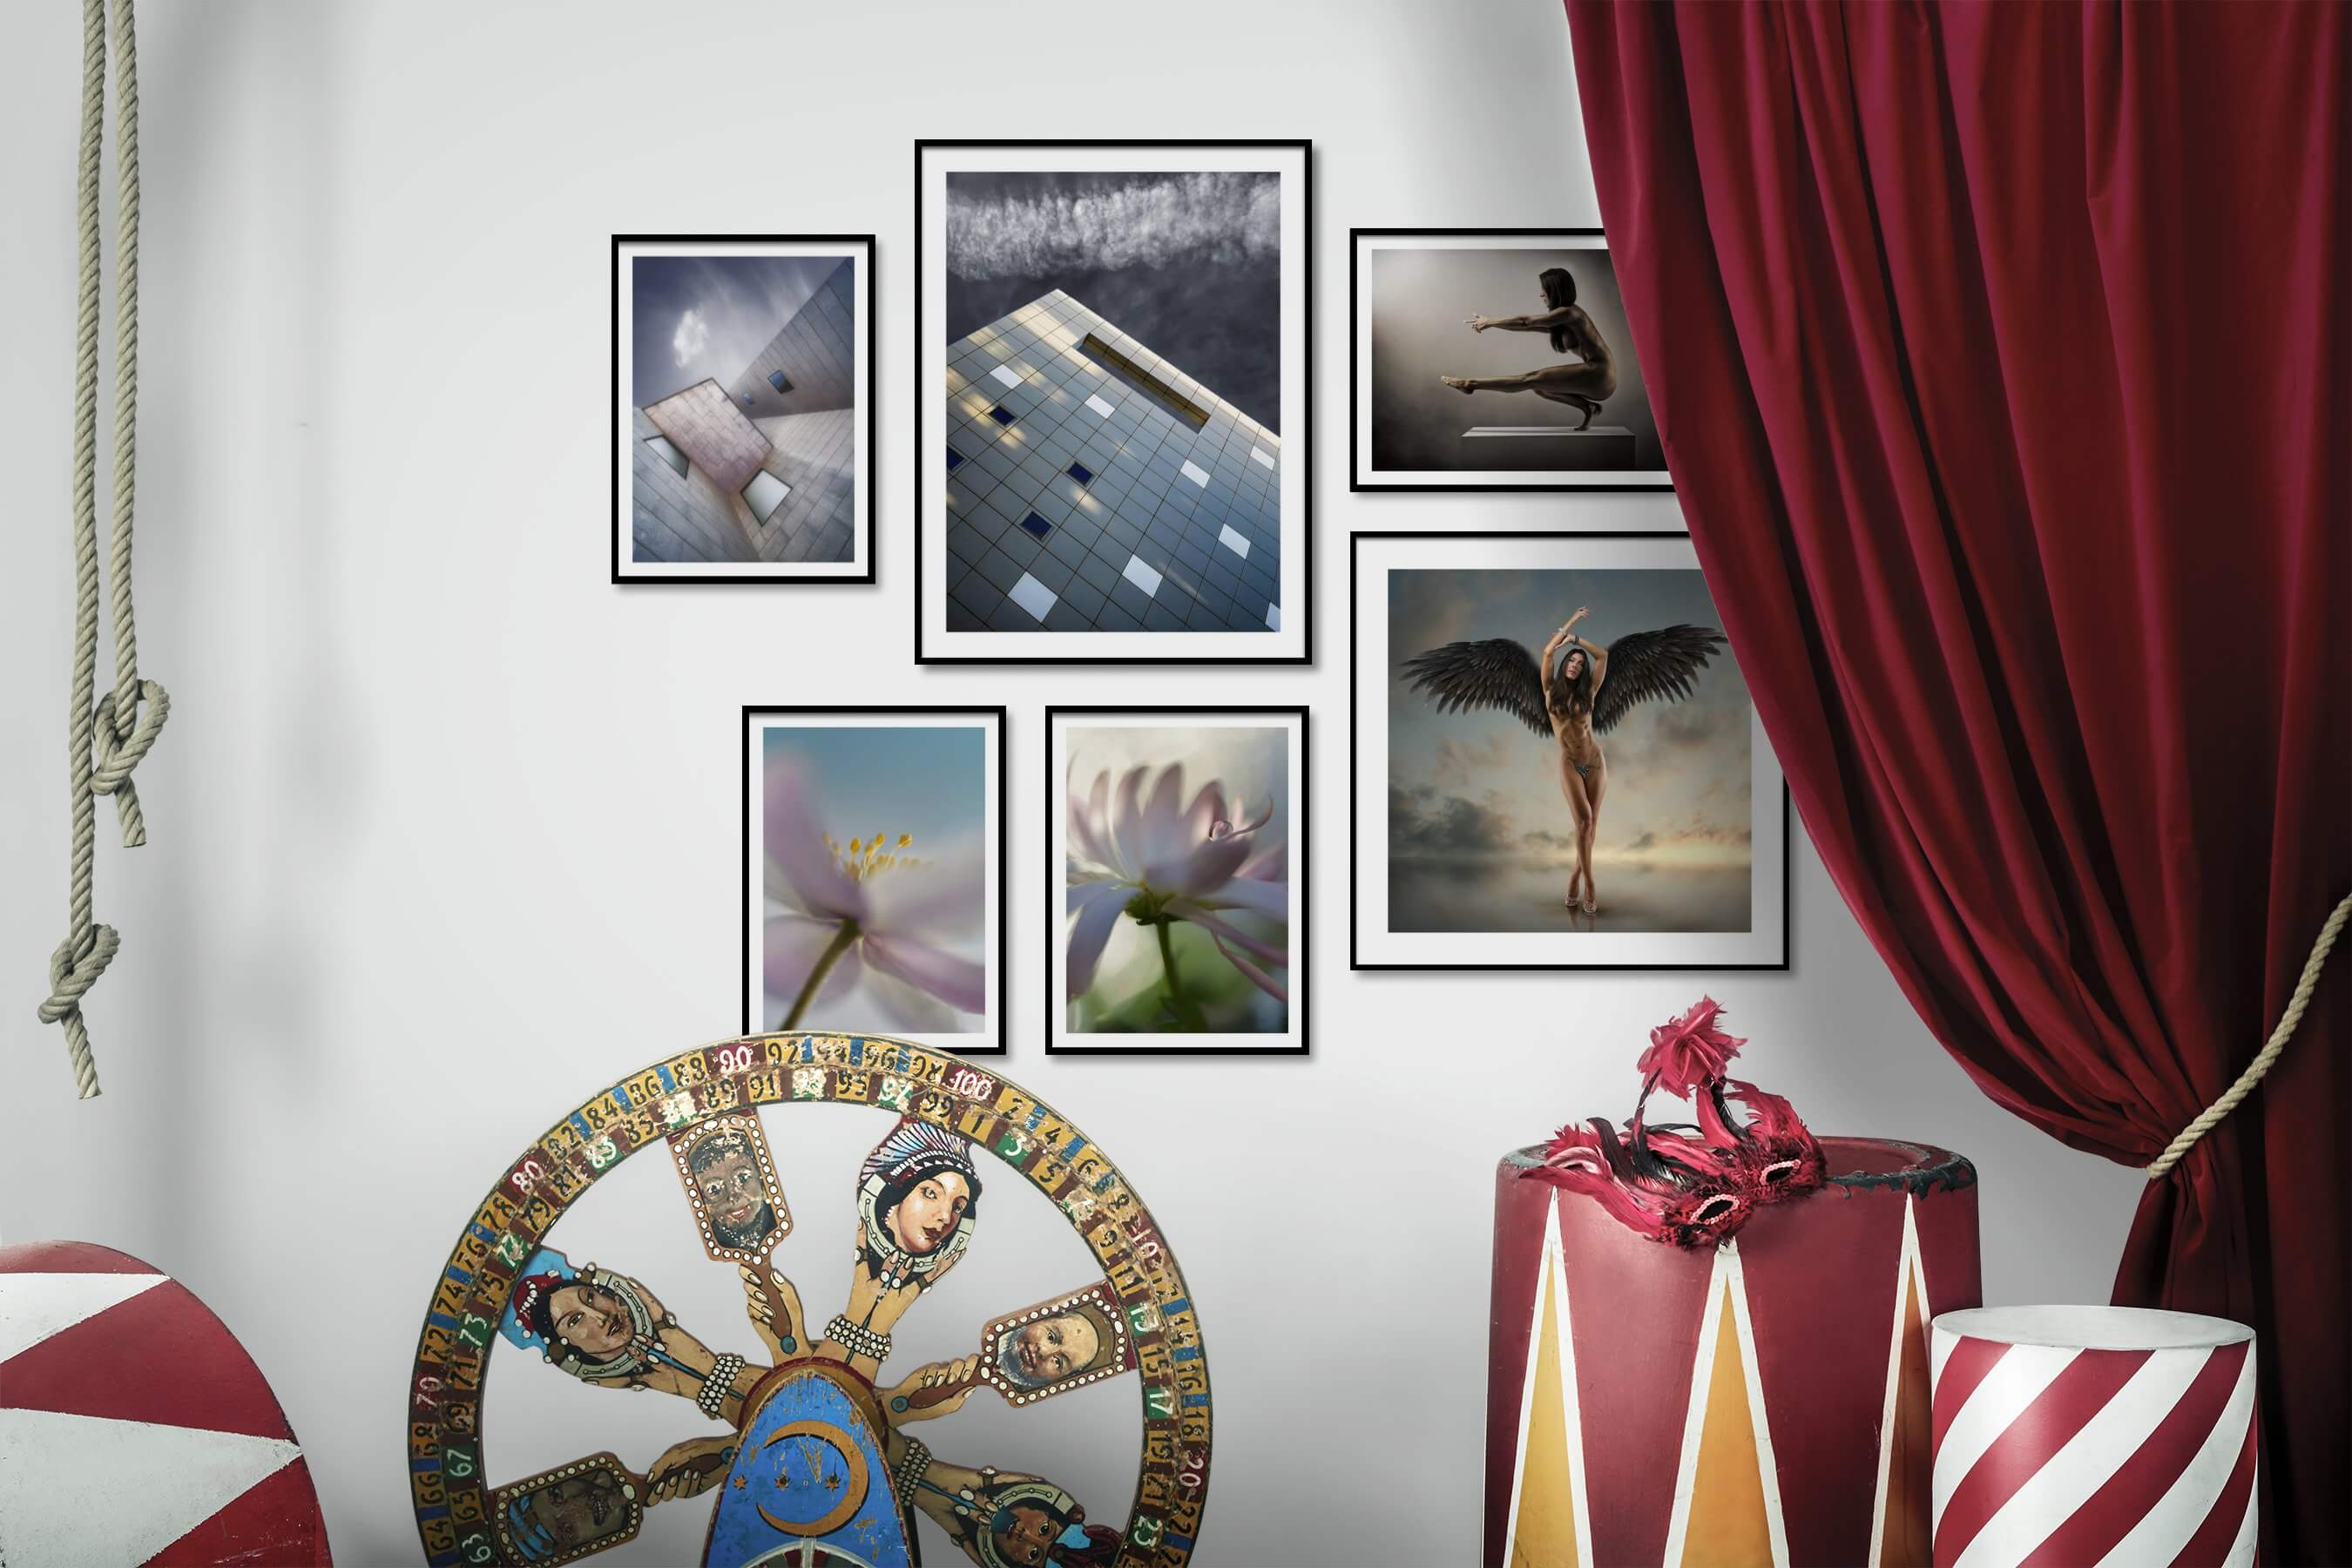 Gallery wall idea with six framed pictures arranged on a wall depicting For the Moderate, Flowers & Plants, Fashion & Beauty, and Artsy